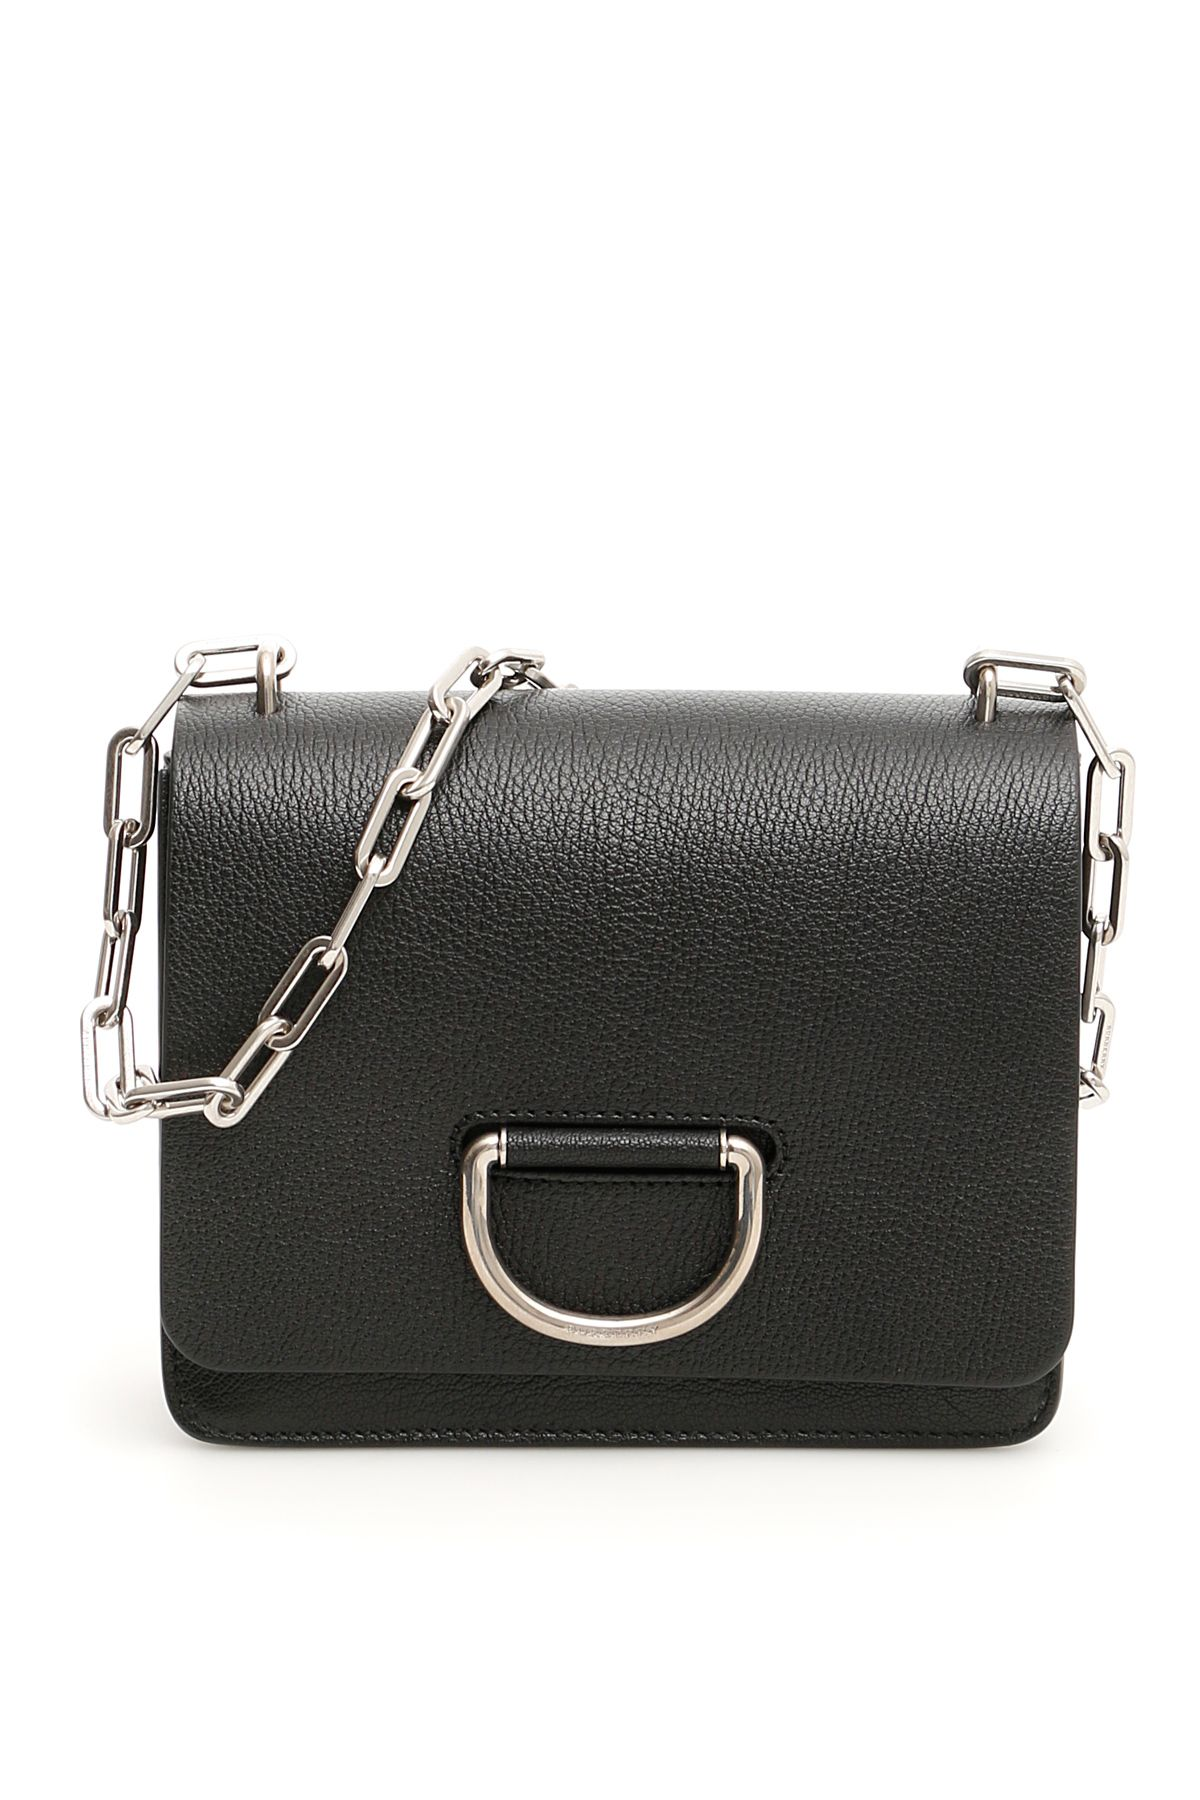 burberry bags women small chain d-ring bag